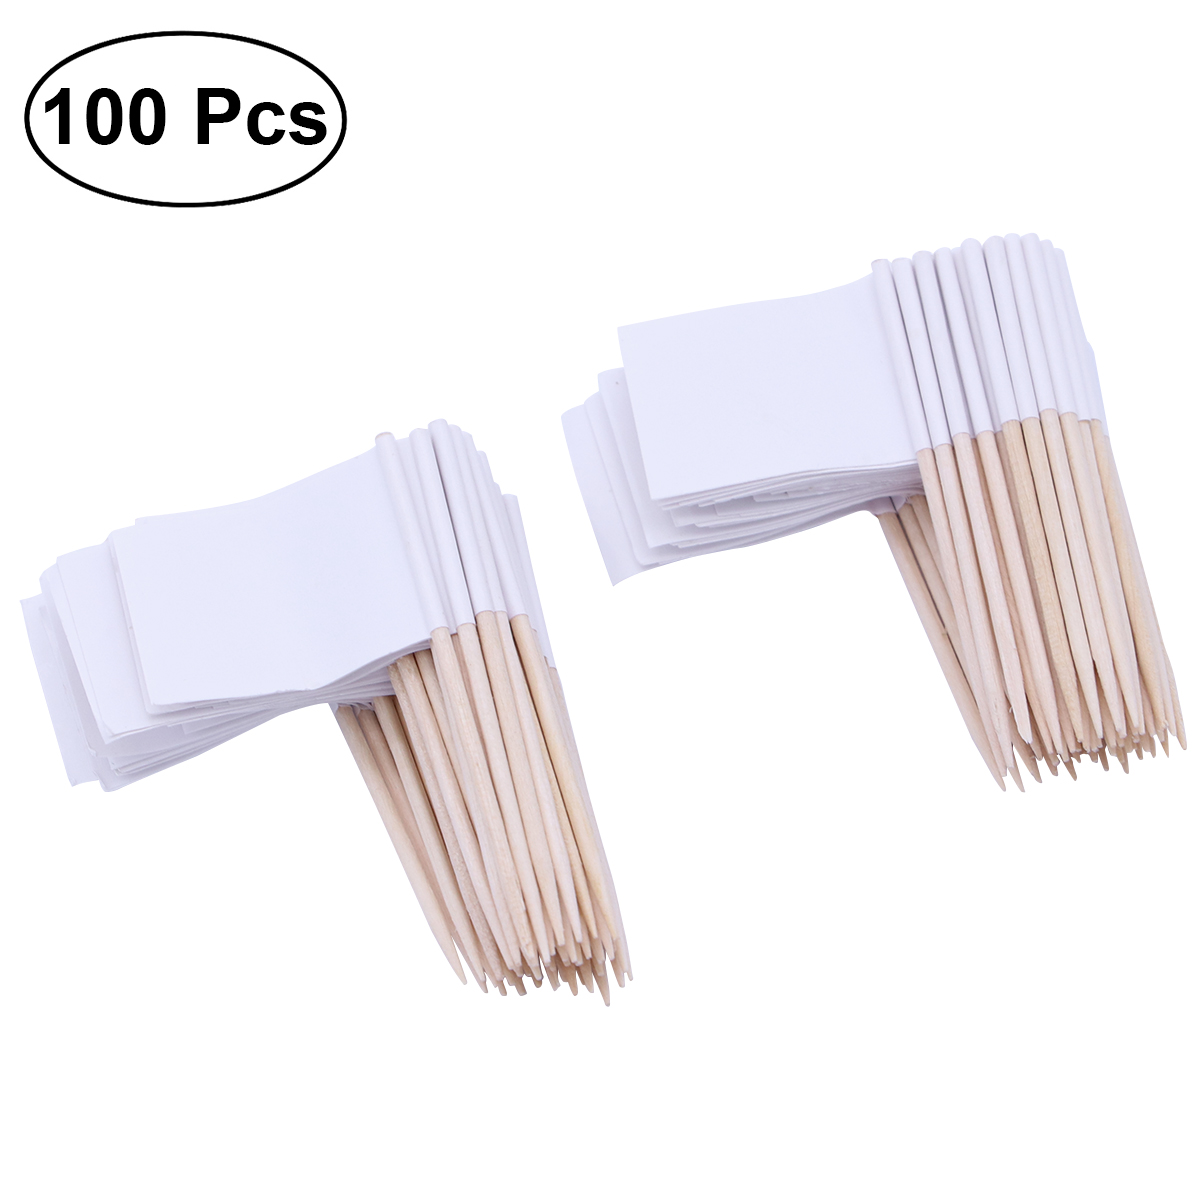 Pack of 100 Racing Flag Toothpicks Flag Picks Appetizer Toothpicks Fruit Sticks for Cocktail Party Accessory - White(China)